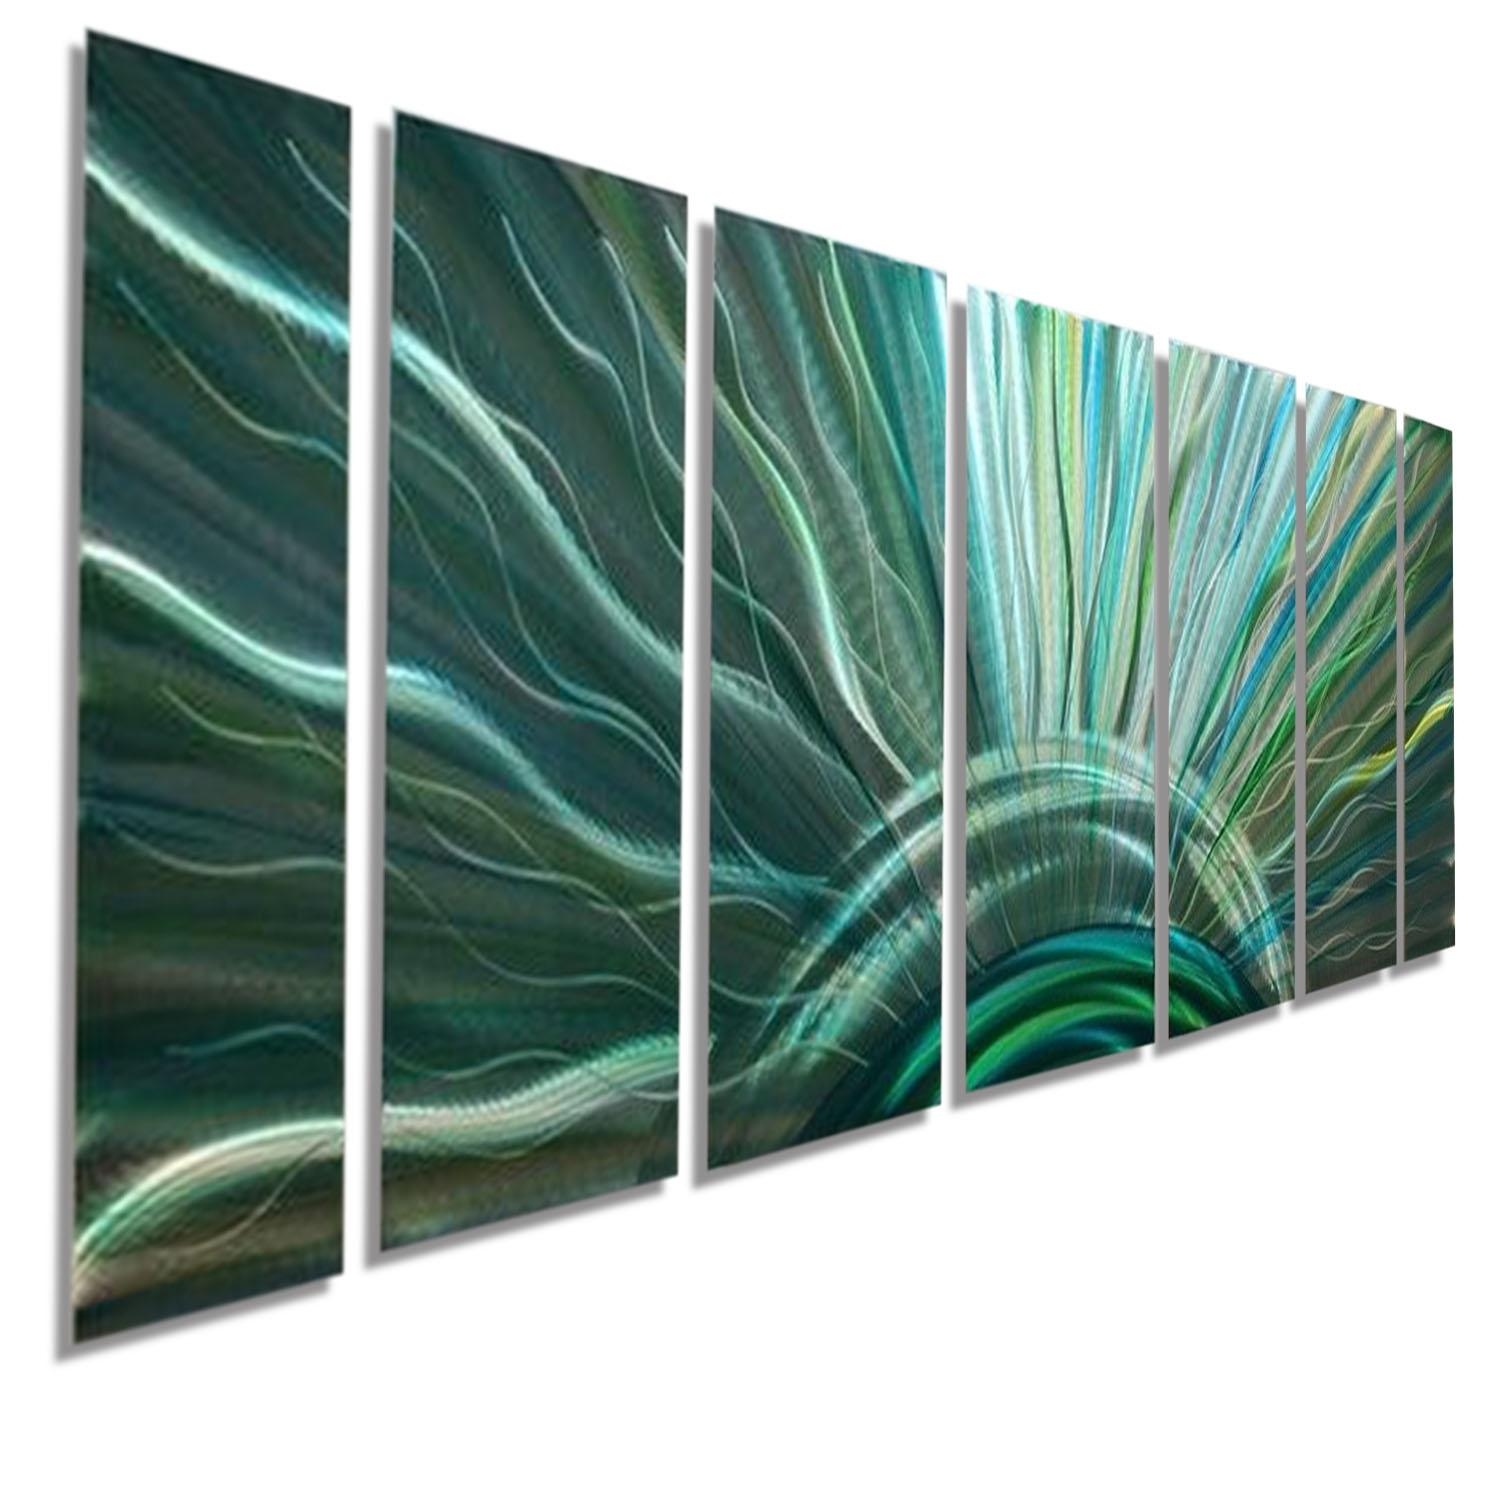 Blue Moon – Silver With Blue & Green Fusion Modern Metal Wall Art Intended For Blue And Green Wall Art (View 3 of 20)